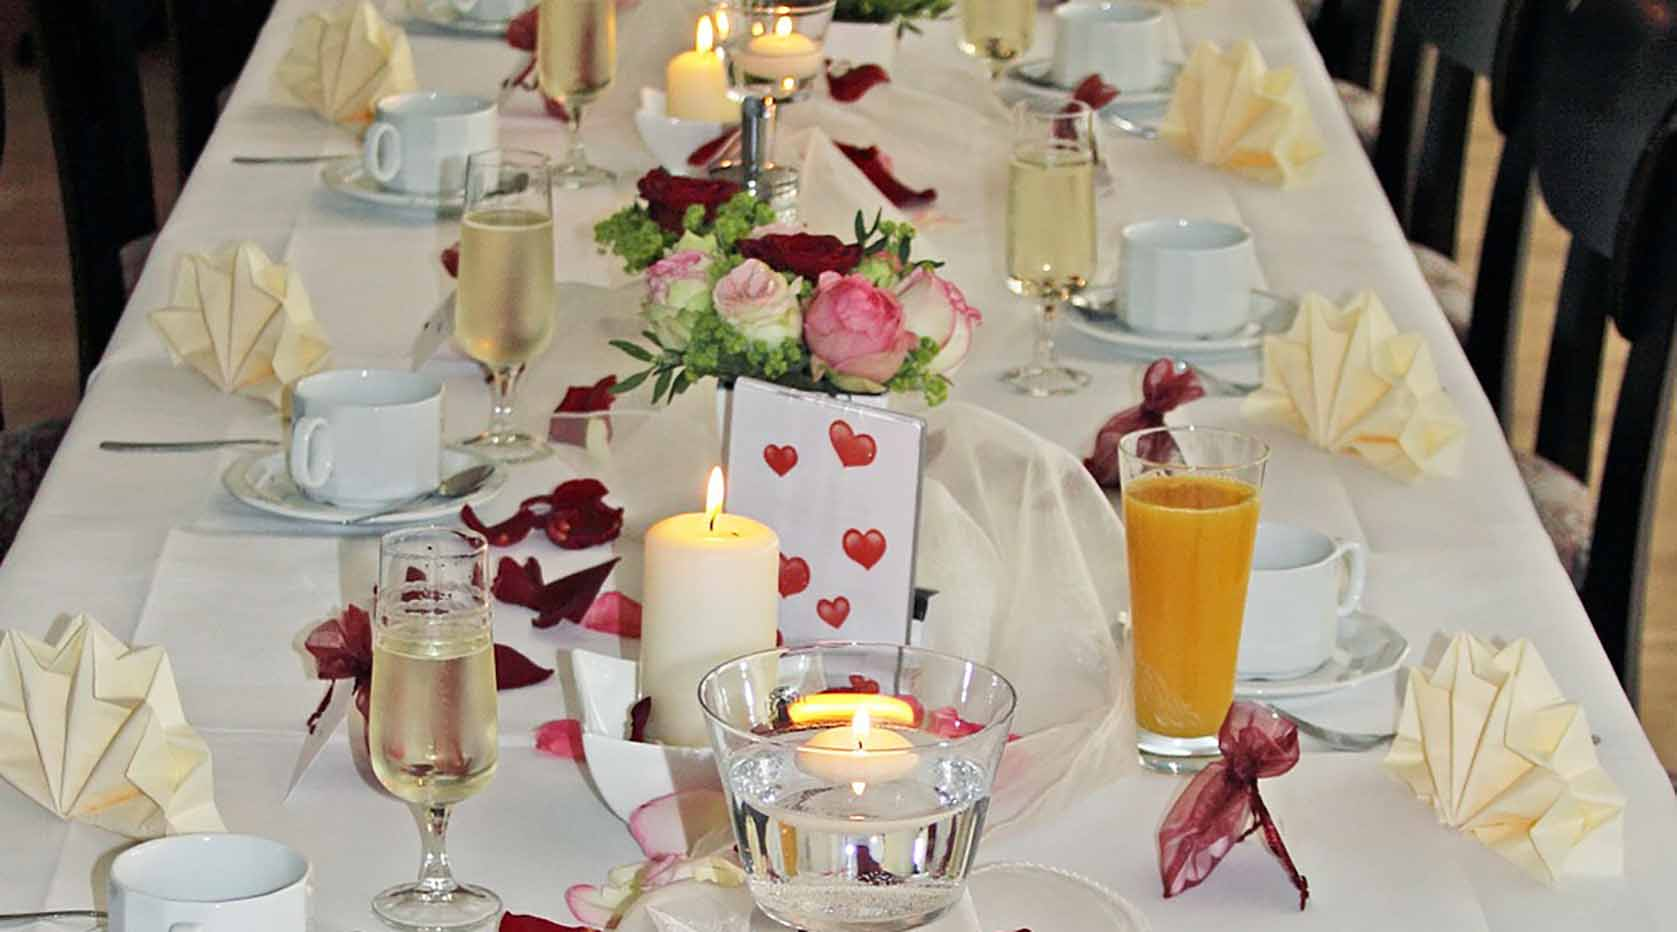 Wedding table setting with candles.